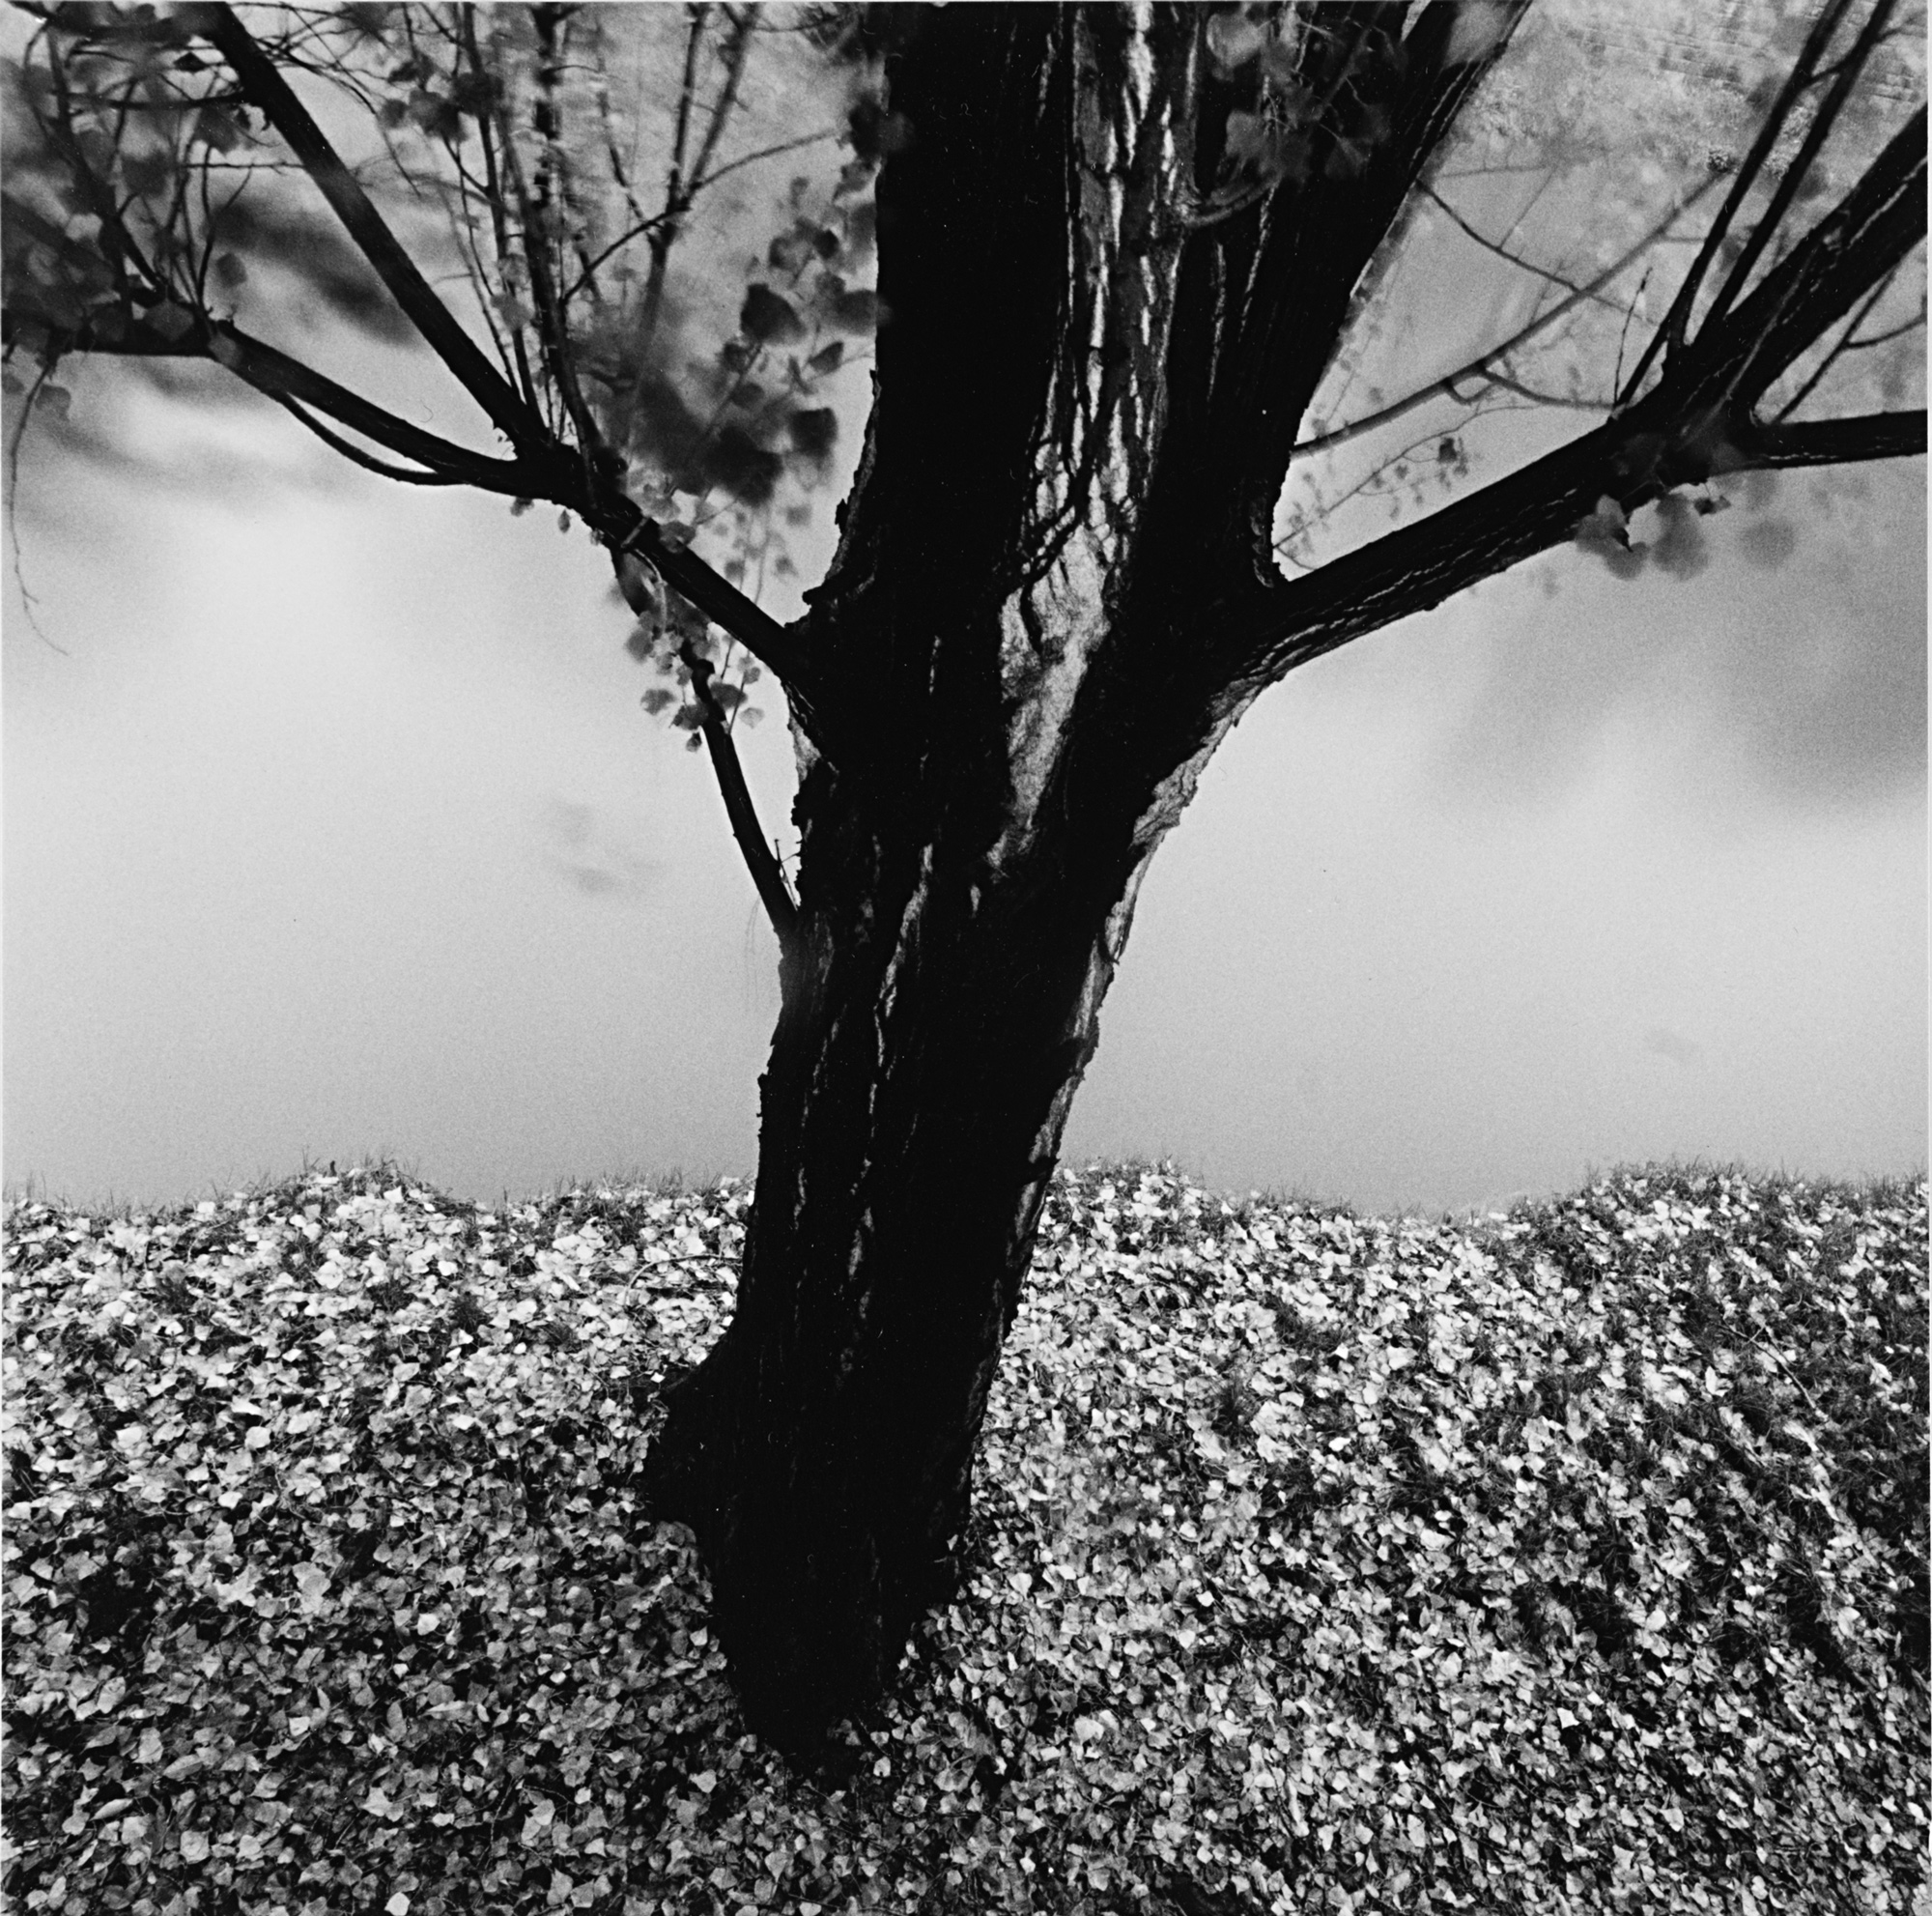 River Willow, Study 2, Strasbourg, France, 1993